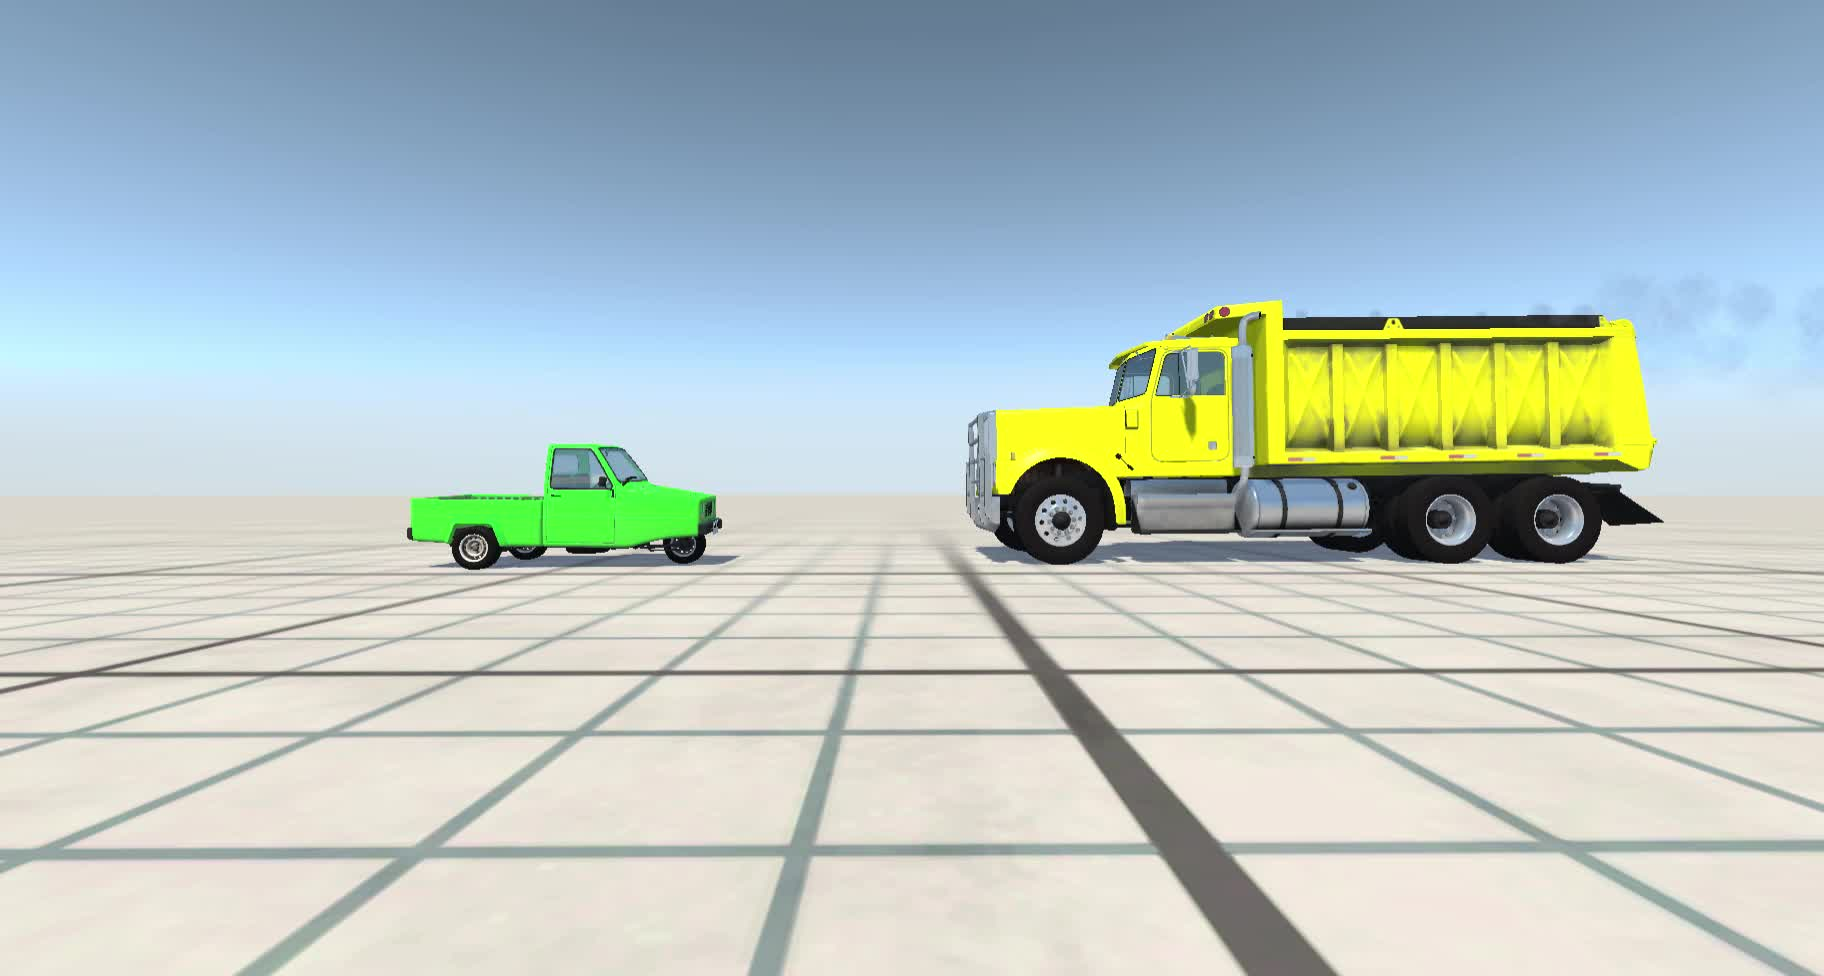 Car, Game Physics, Size_Difference, Truck, car, game physics, size_difference, transportation, truck, trucks, Bigger Truck GIFs